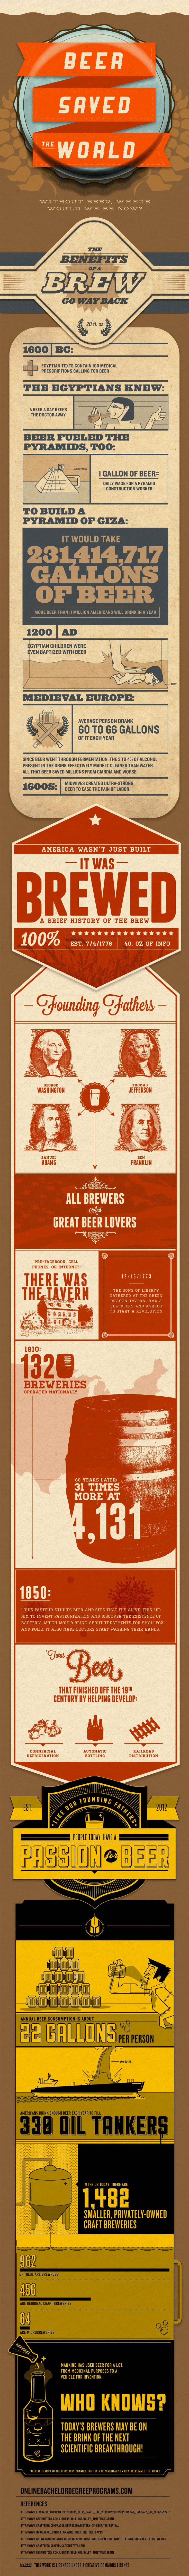 "Beer Saved The World"" width=""500""  border=""0"